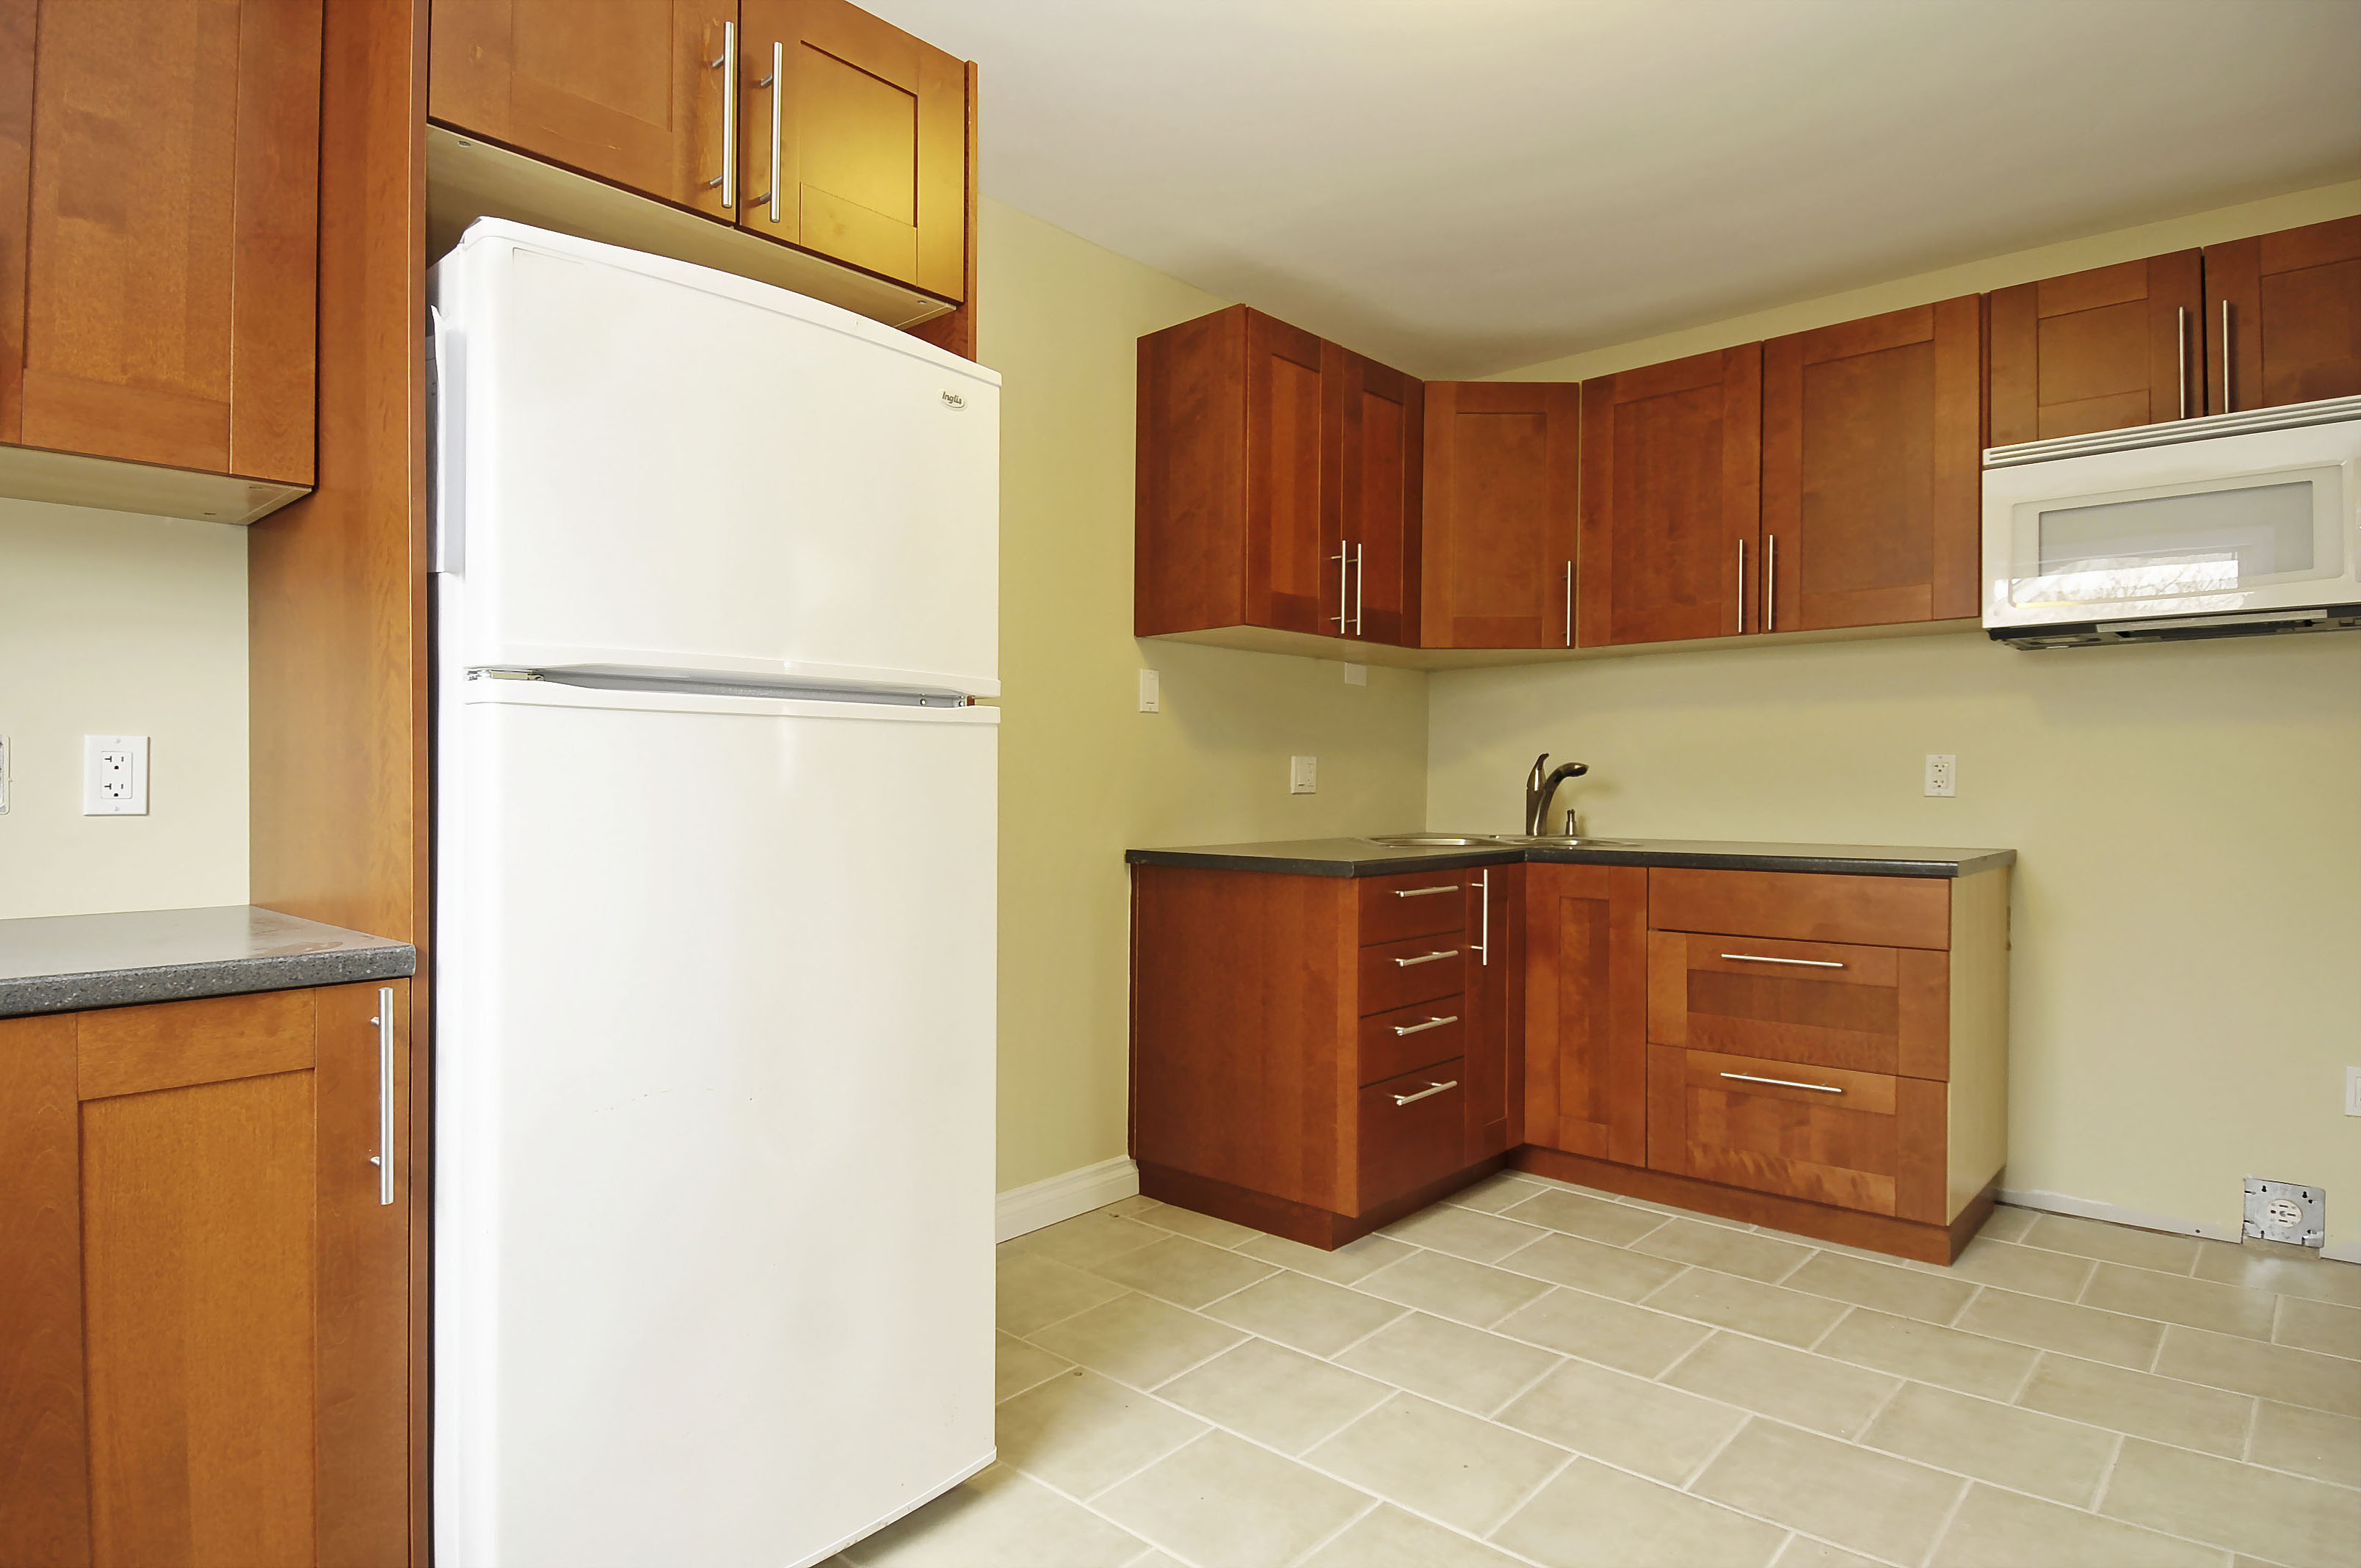 2-1127 Richard Avenue second floor kitchen fridge